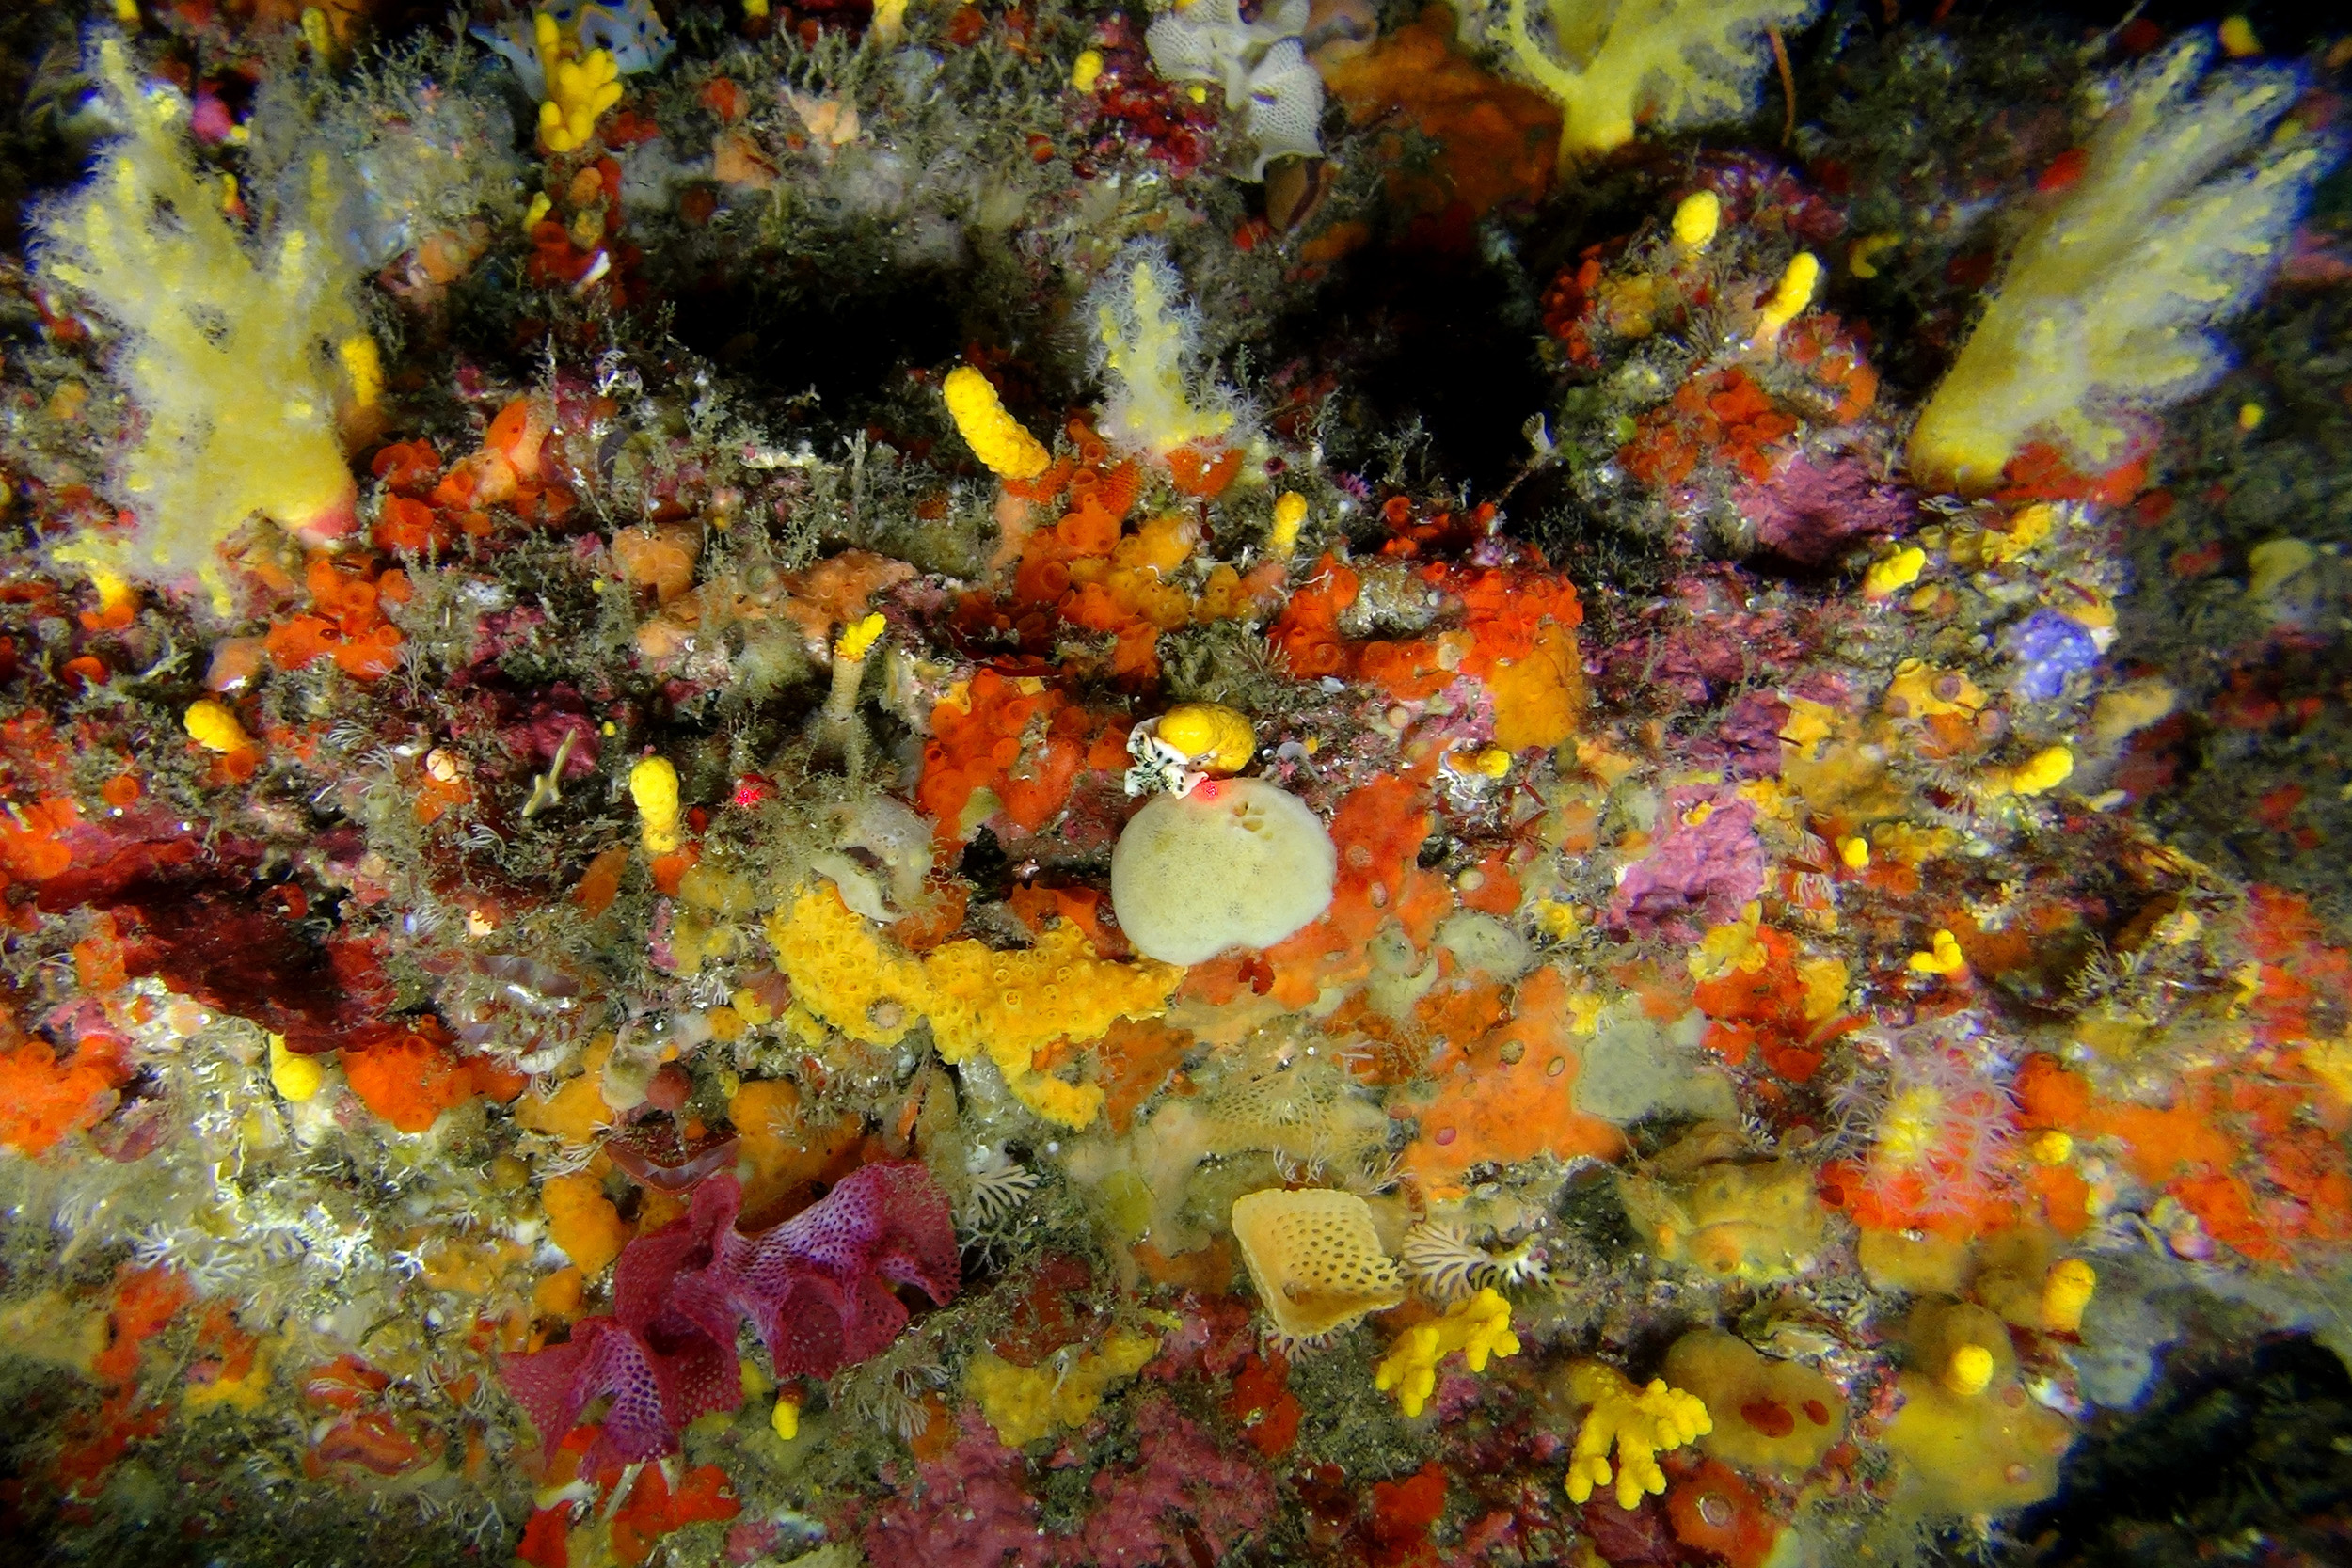 The deep reefs of Aliwal Shoal support an incredible diversity of corals, which are important nurseries for fish (ACEP Surrogacy Project)